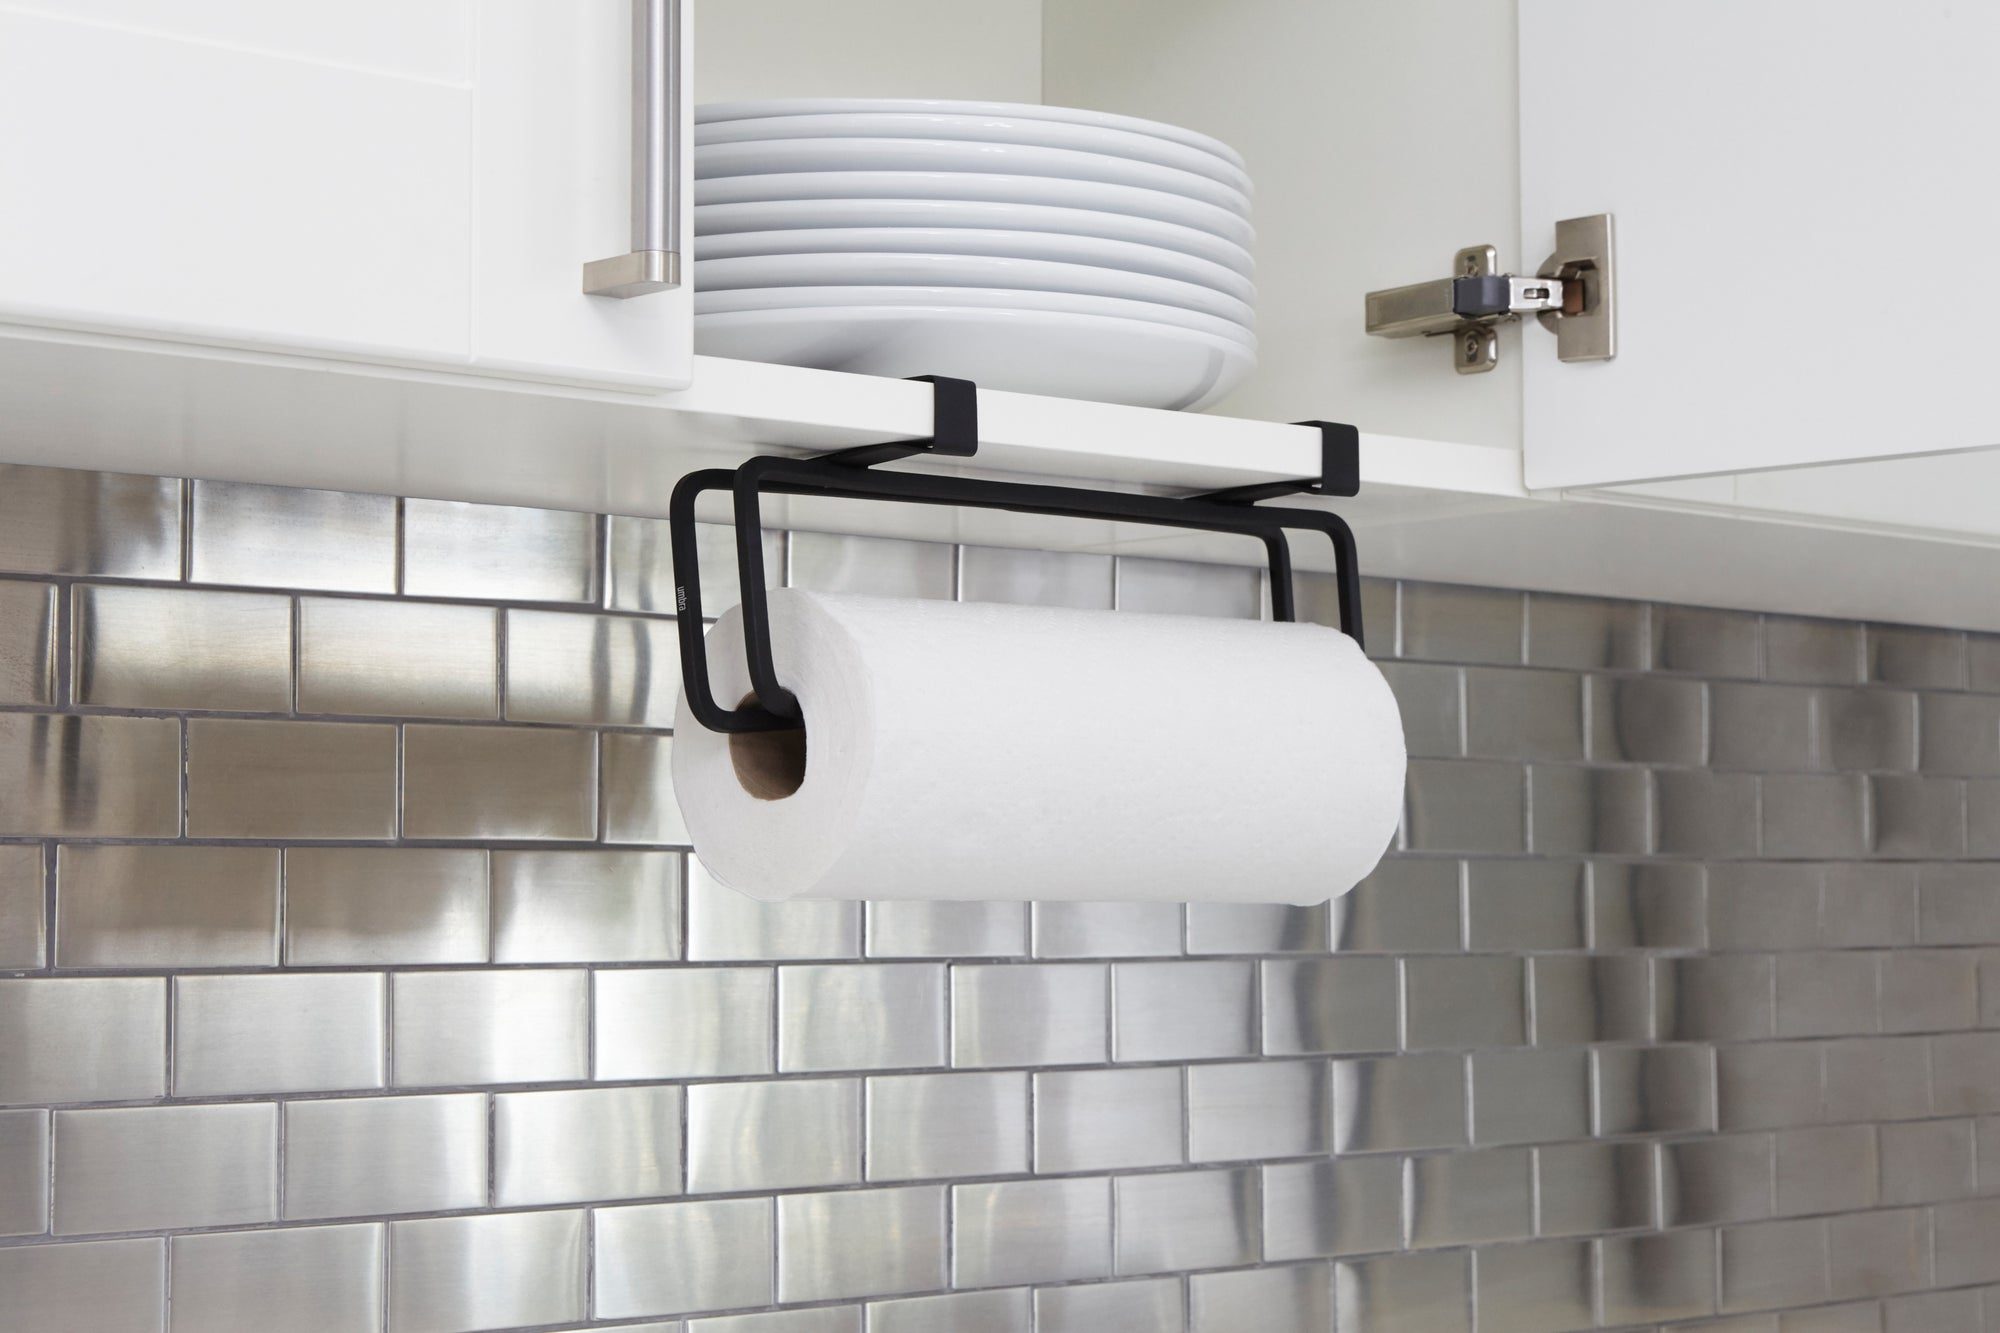 Squire Wall Mounted Paper Towel Holder Shop Paper Towel Holders Umbra